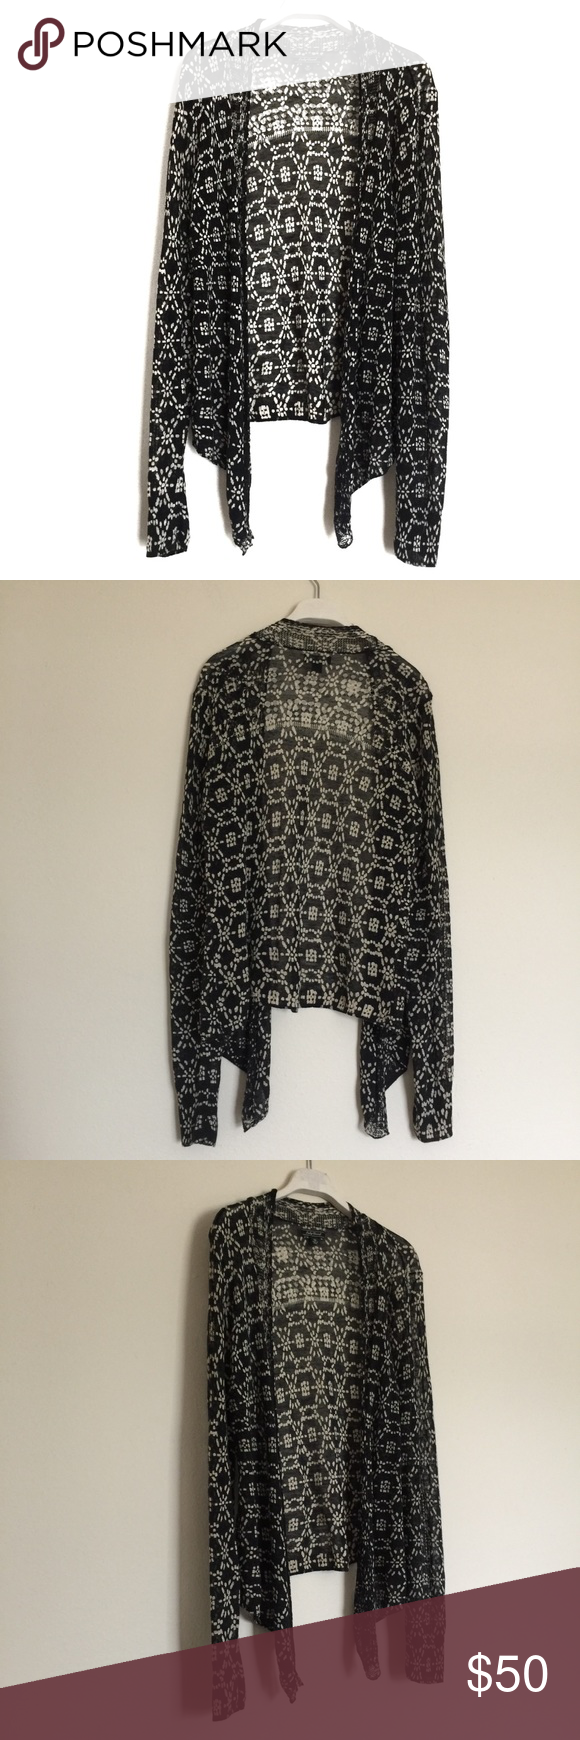 Lucky Brand black white knit waterfall cardigan M | Lucky brand ...